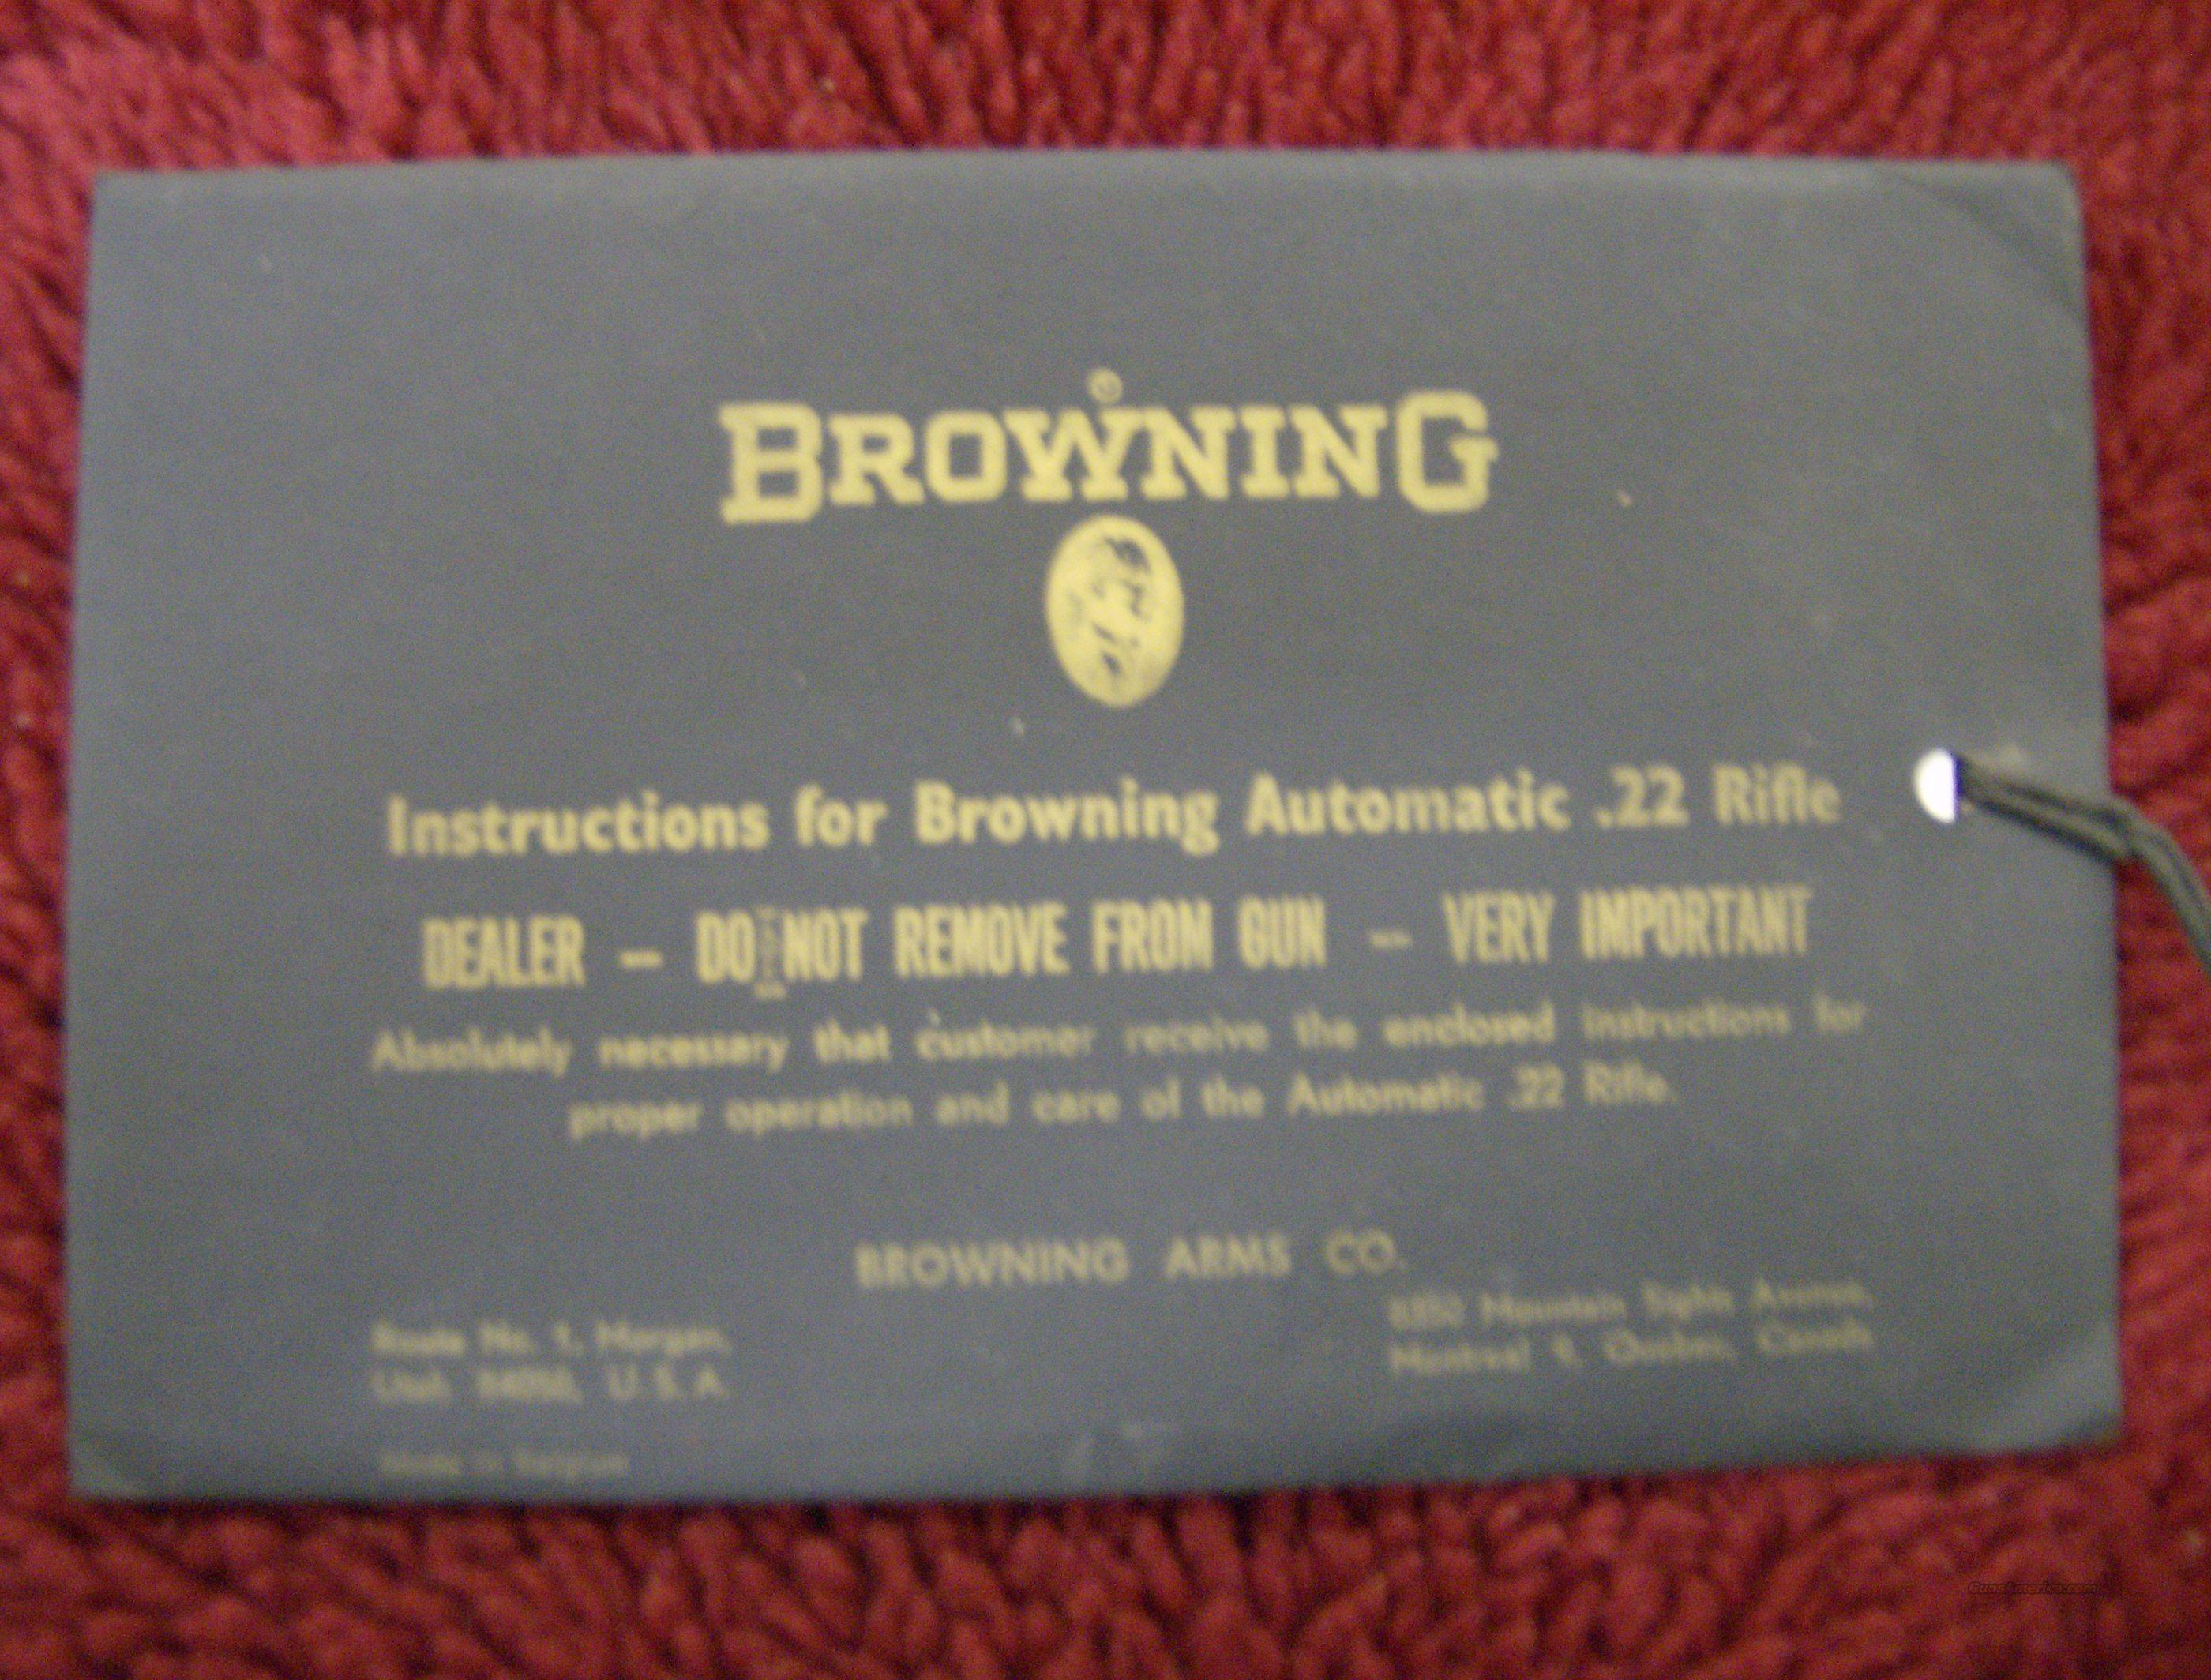 BROWNING OWNERS MANUAL FOR 22 AUTOMATIC RIFLE  Non-Guns > Manuals - Print